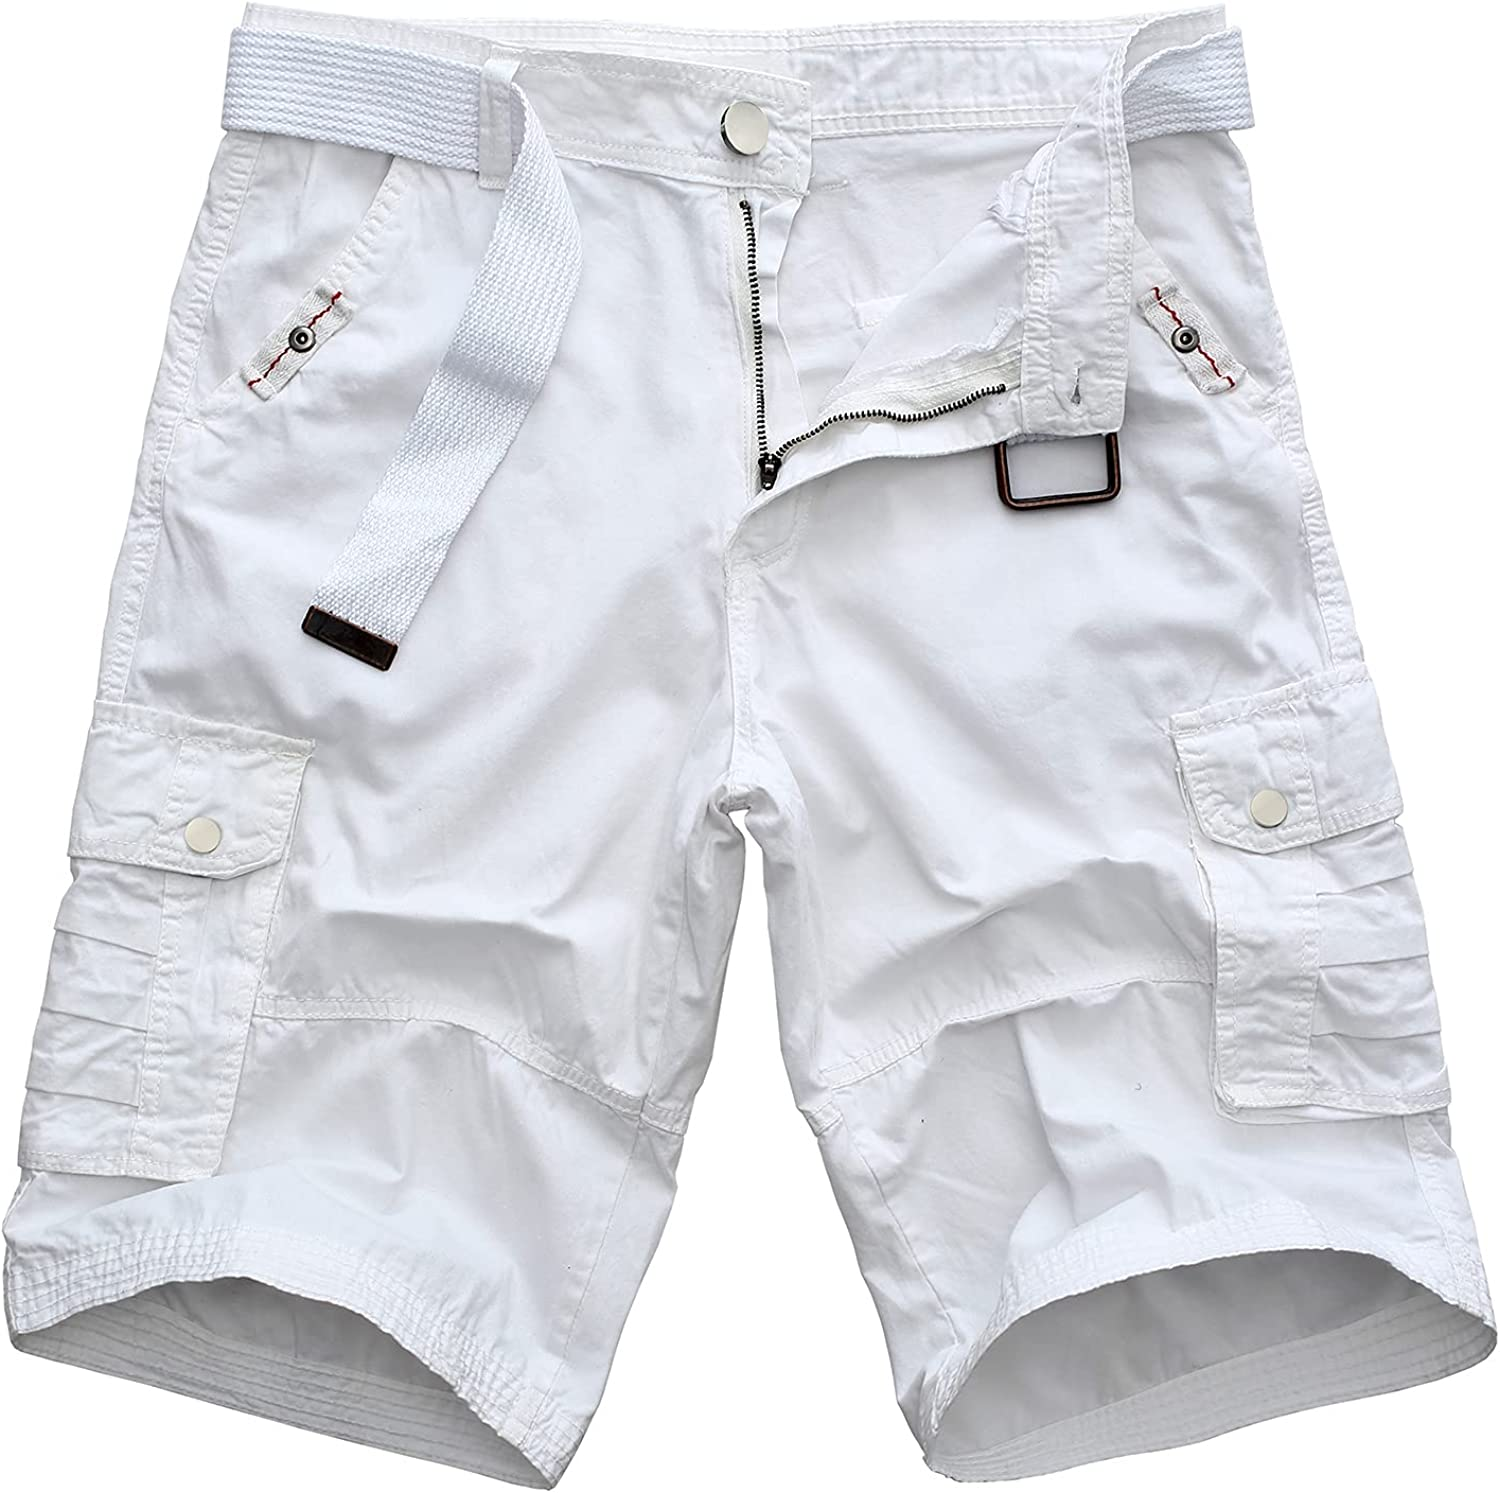 WearLink Men's Casual Deluxe Cargo Shorts Sum Relaxed Over item handling ☆ Fit Multi Pockets